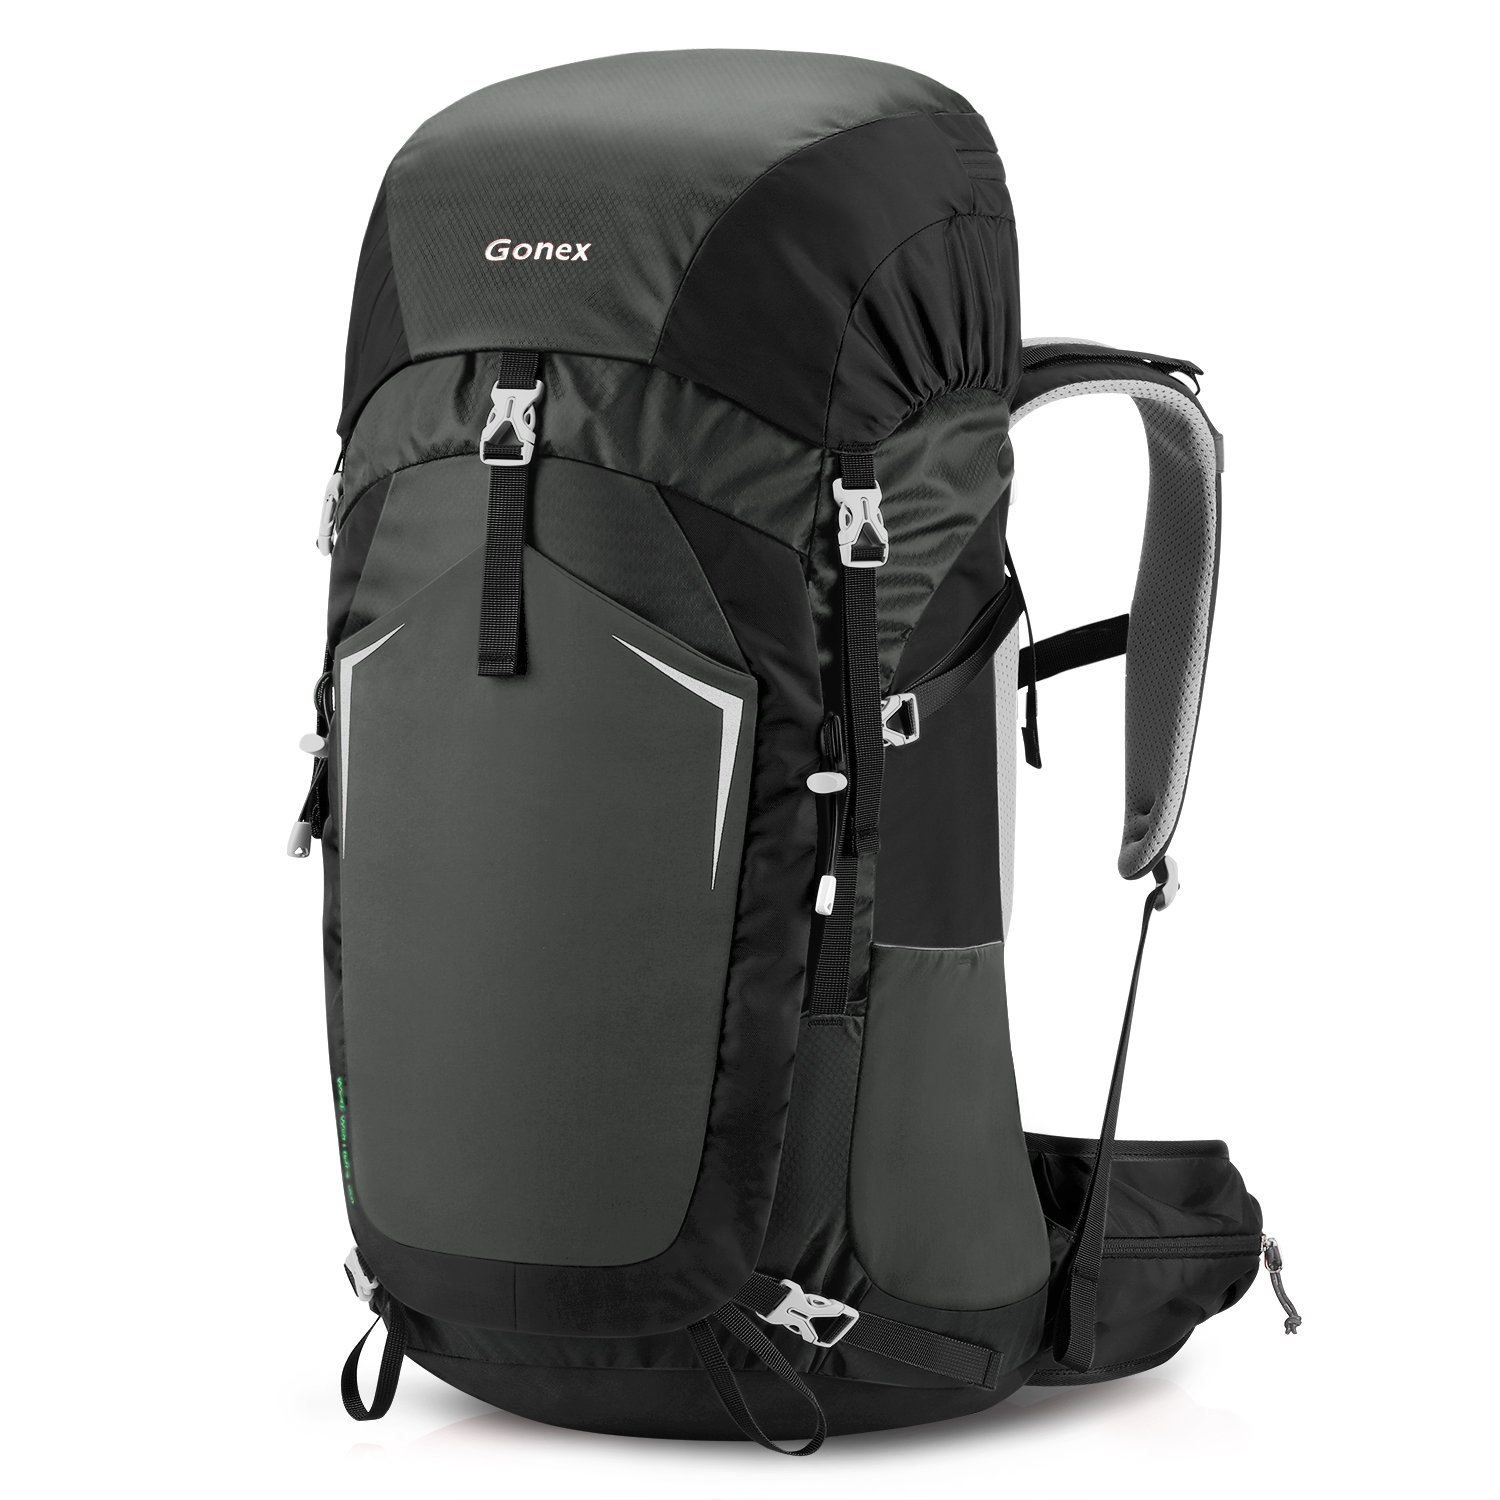 Gonex 55L Hiking Backpack Camping Outdoor Trekking Daypack Wolf Warriors Sport Bag Rain Cover Included Black